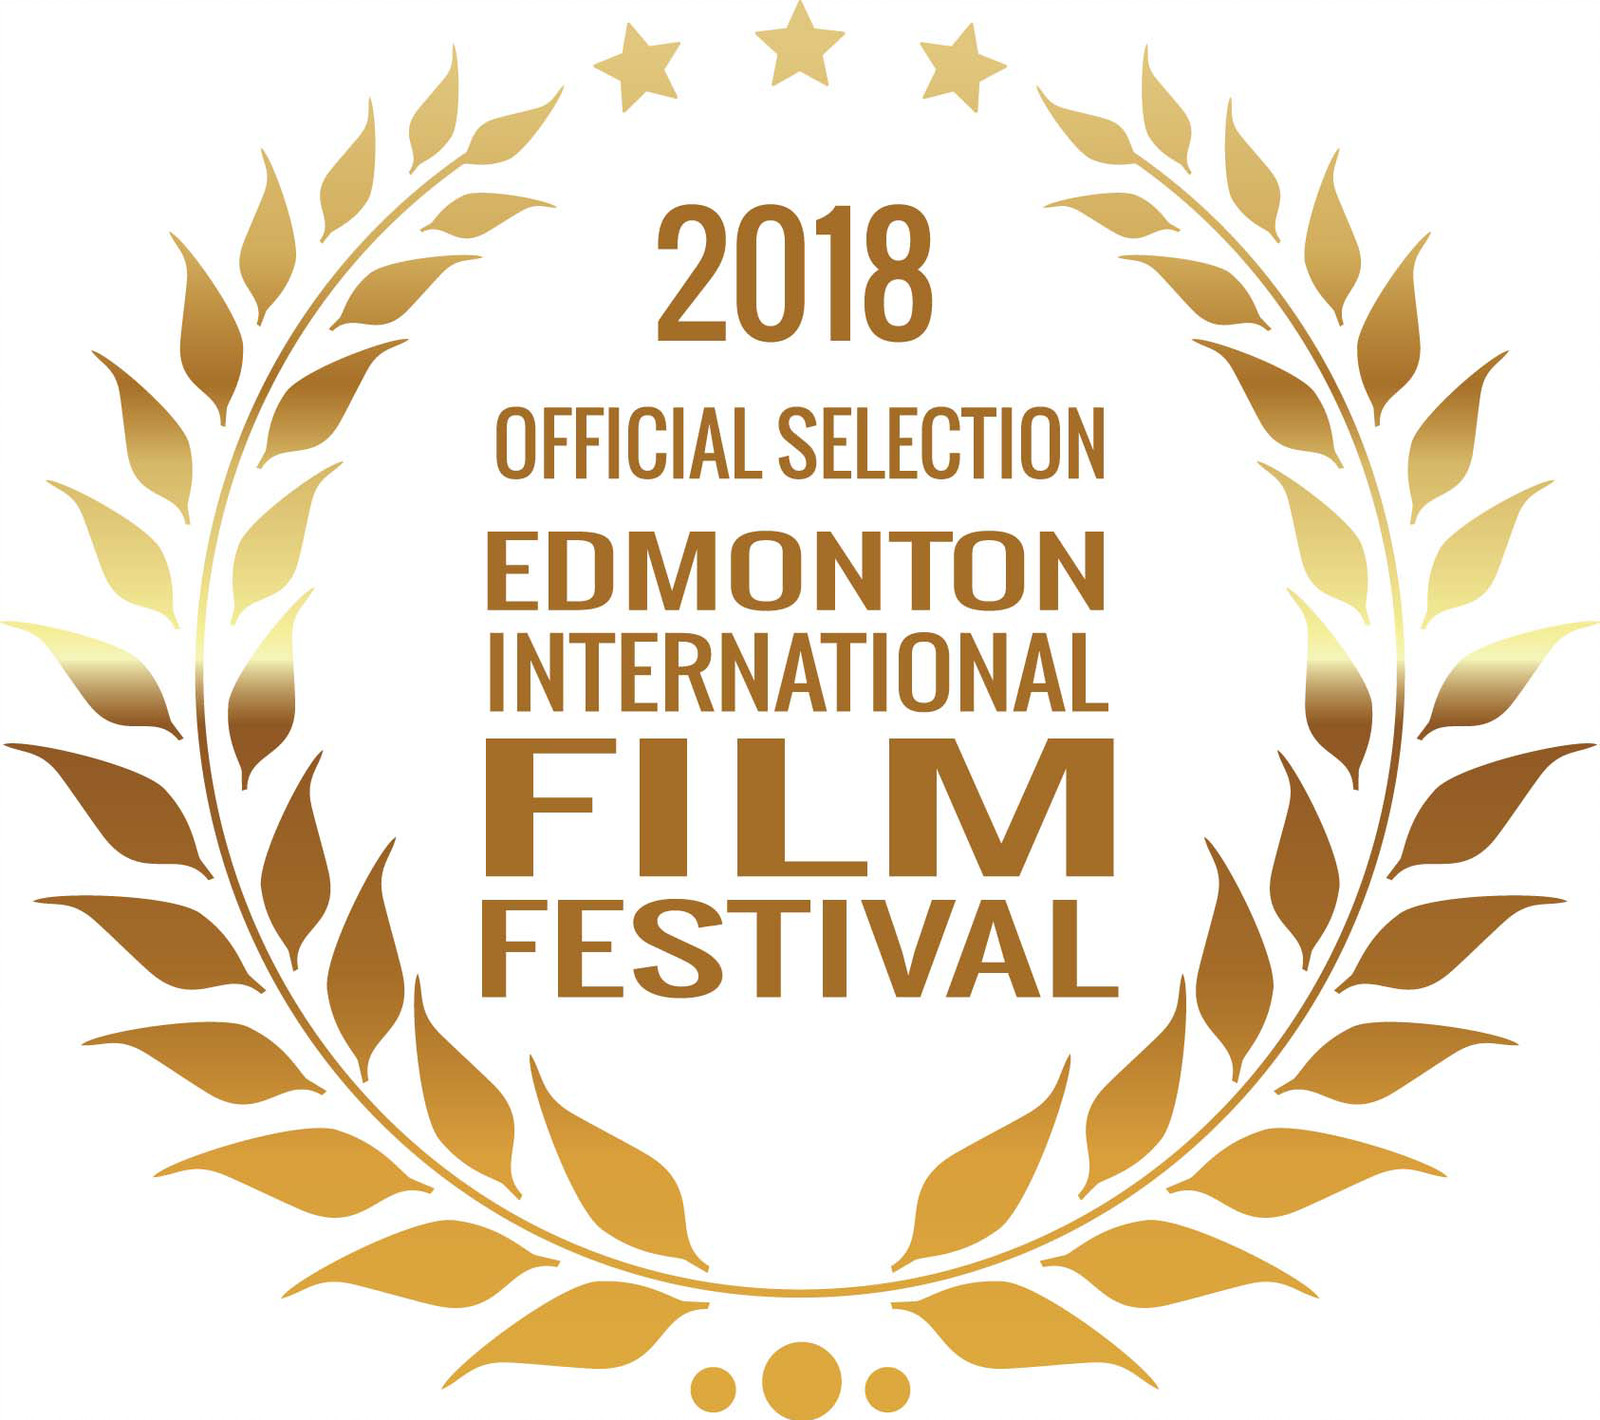 edmonton official selection